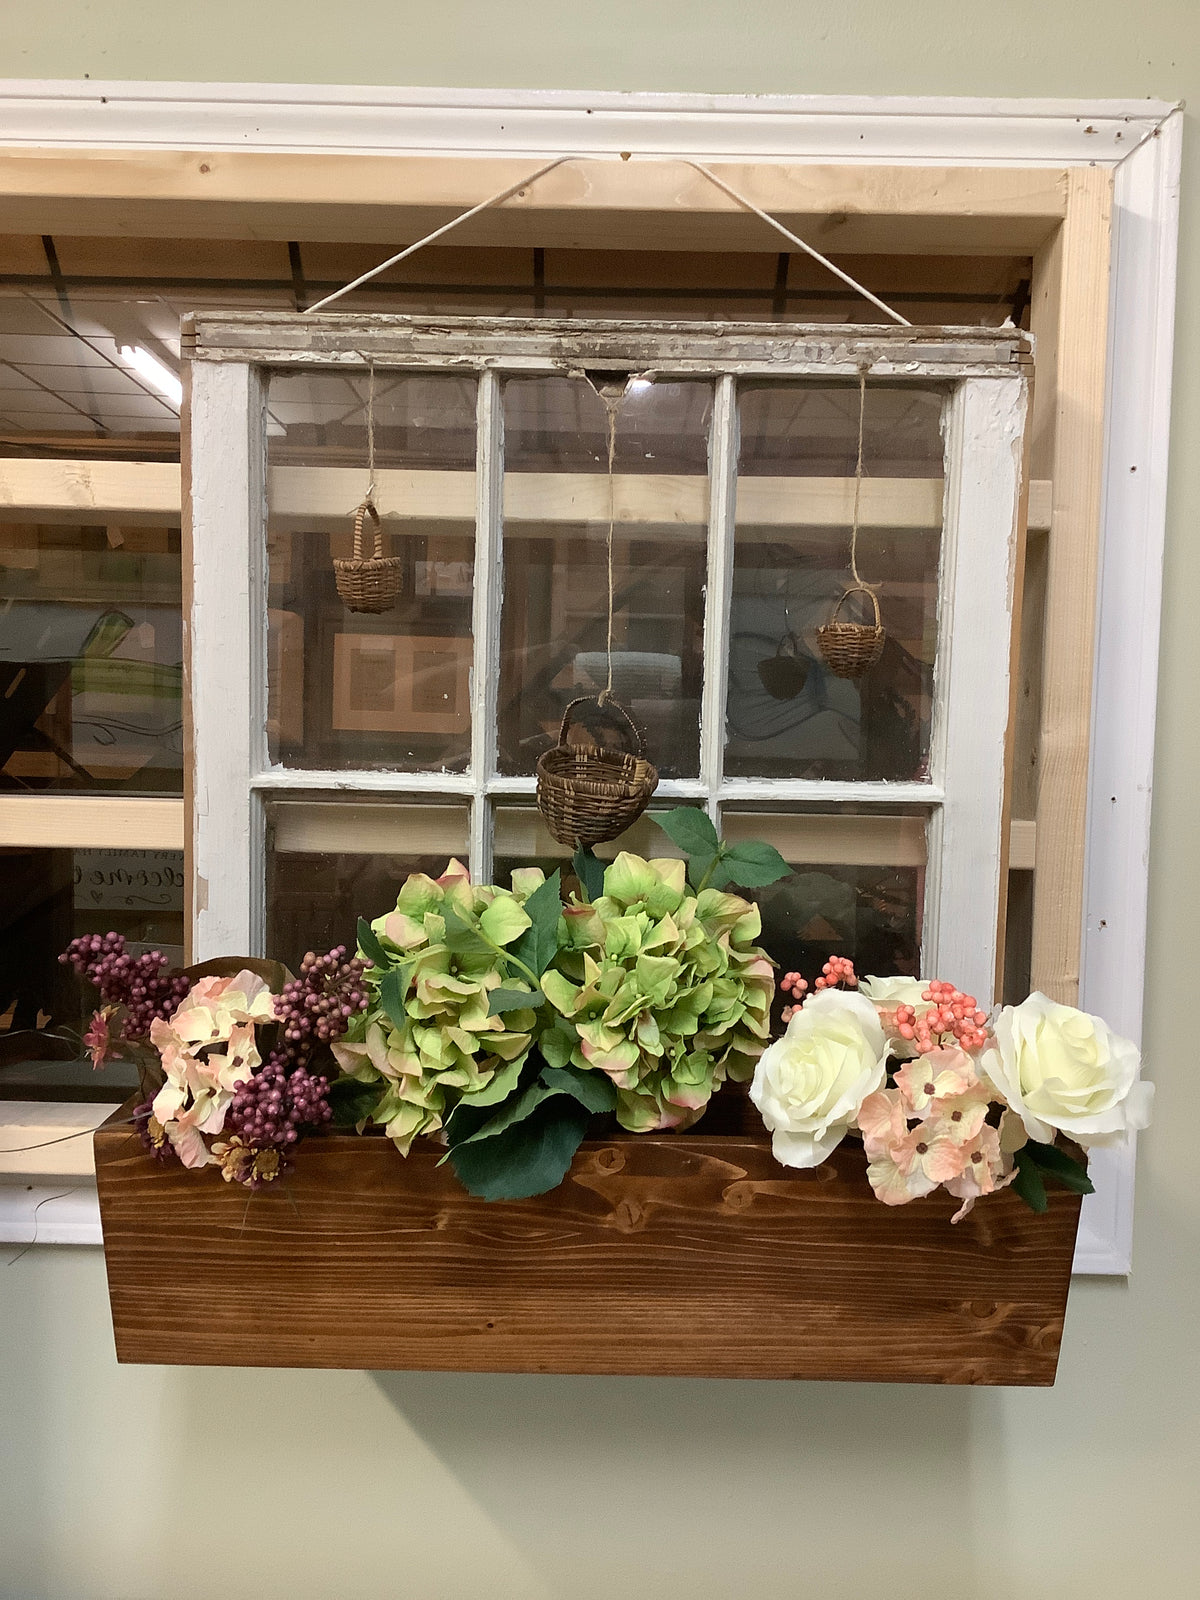 Window with planter